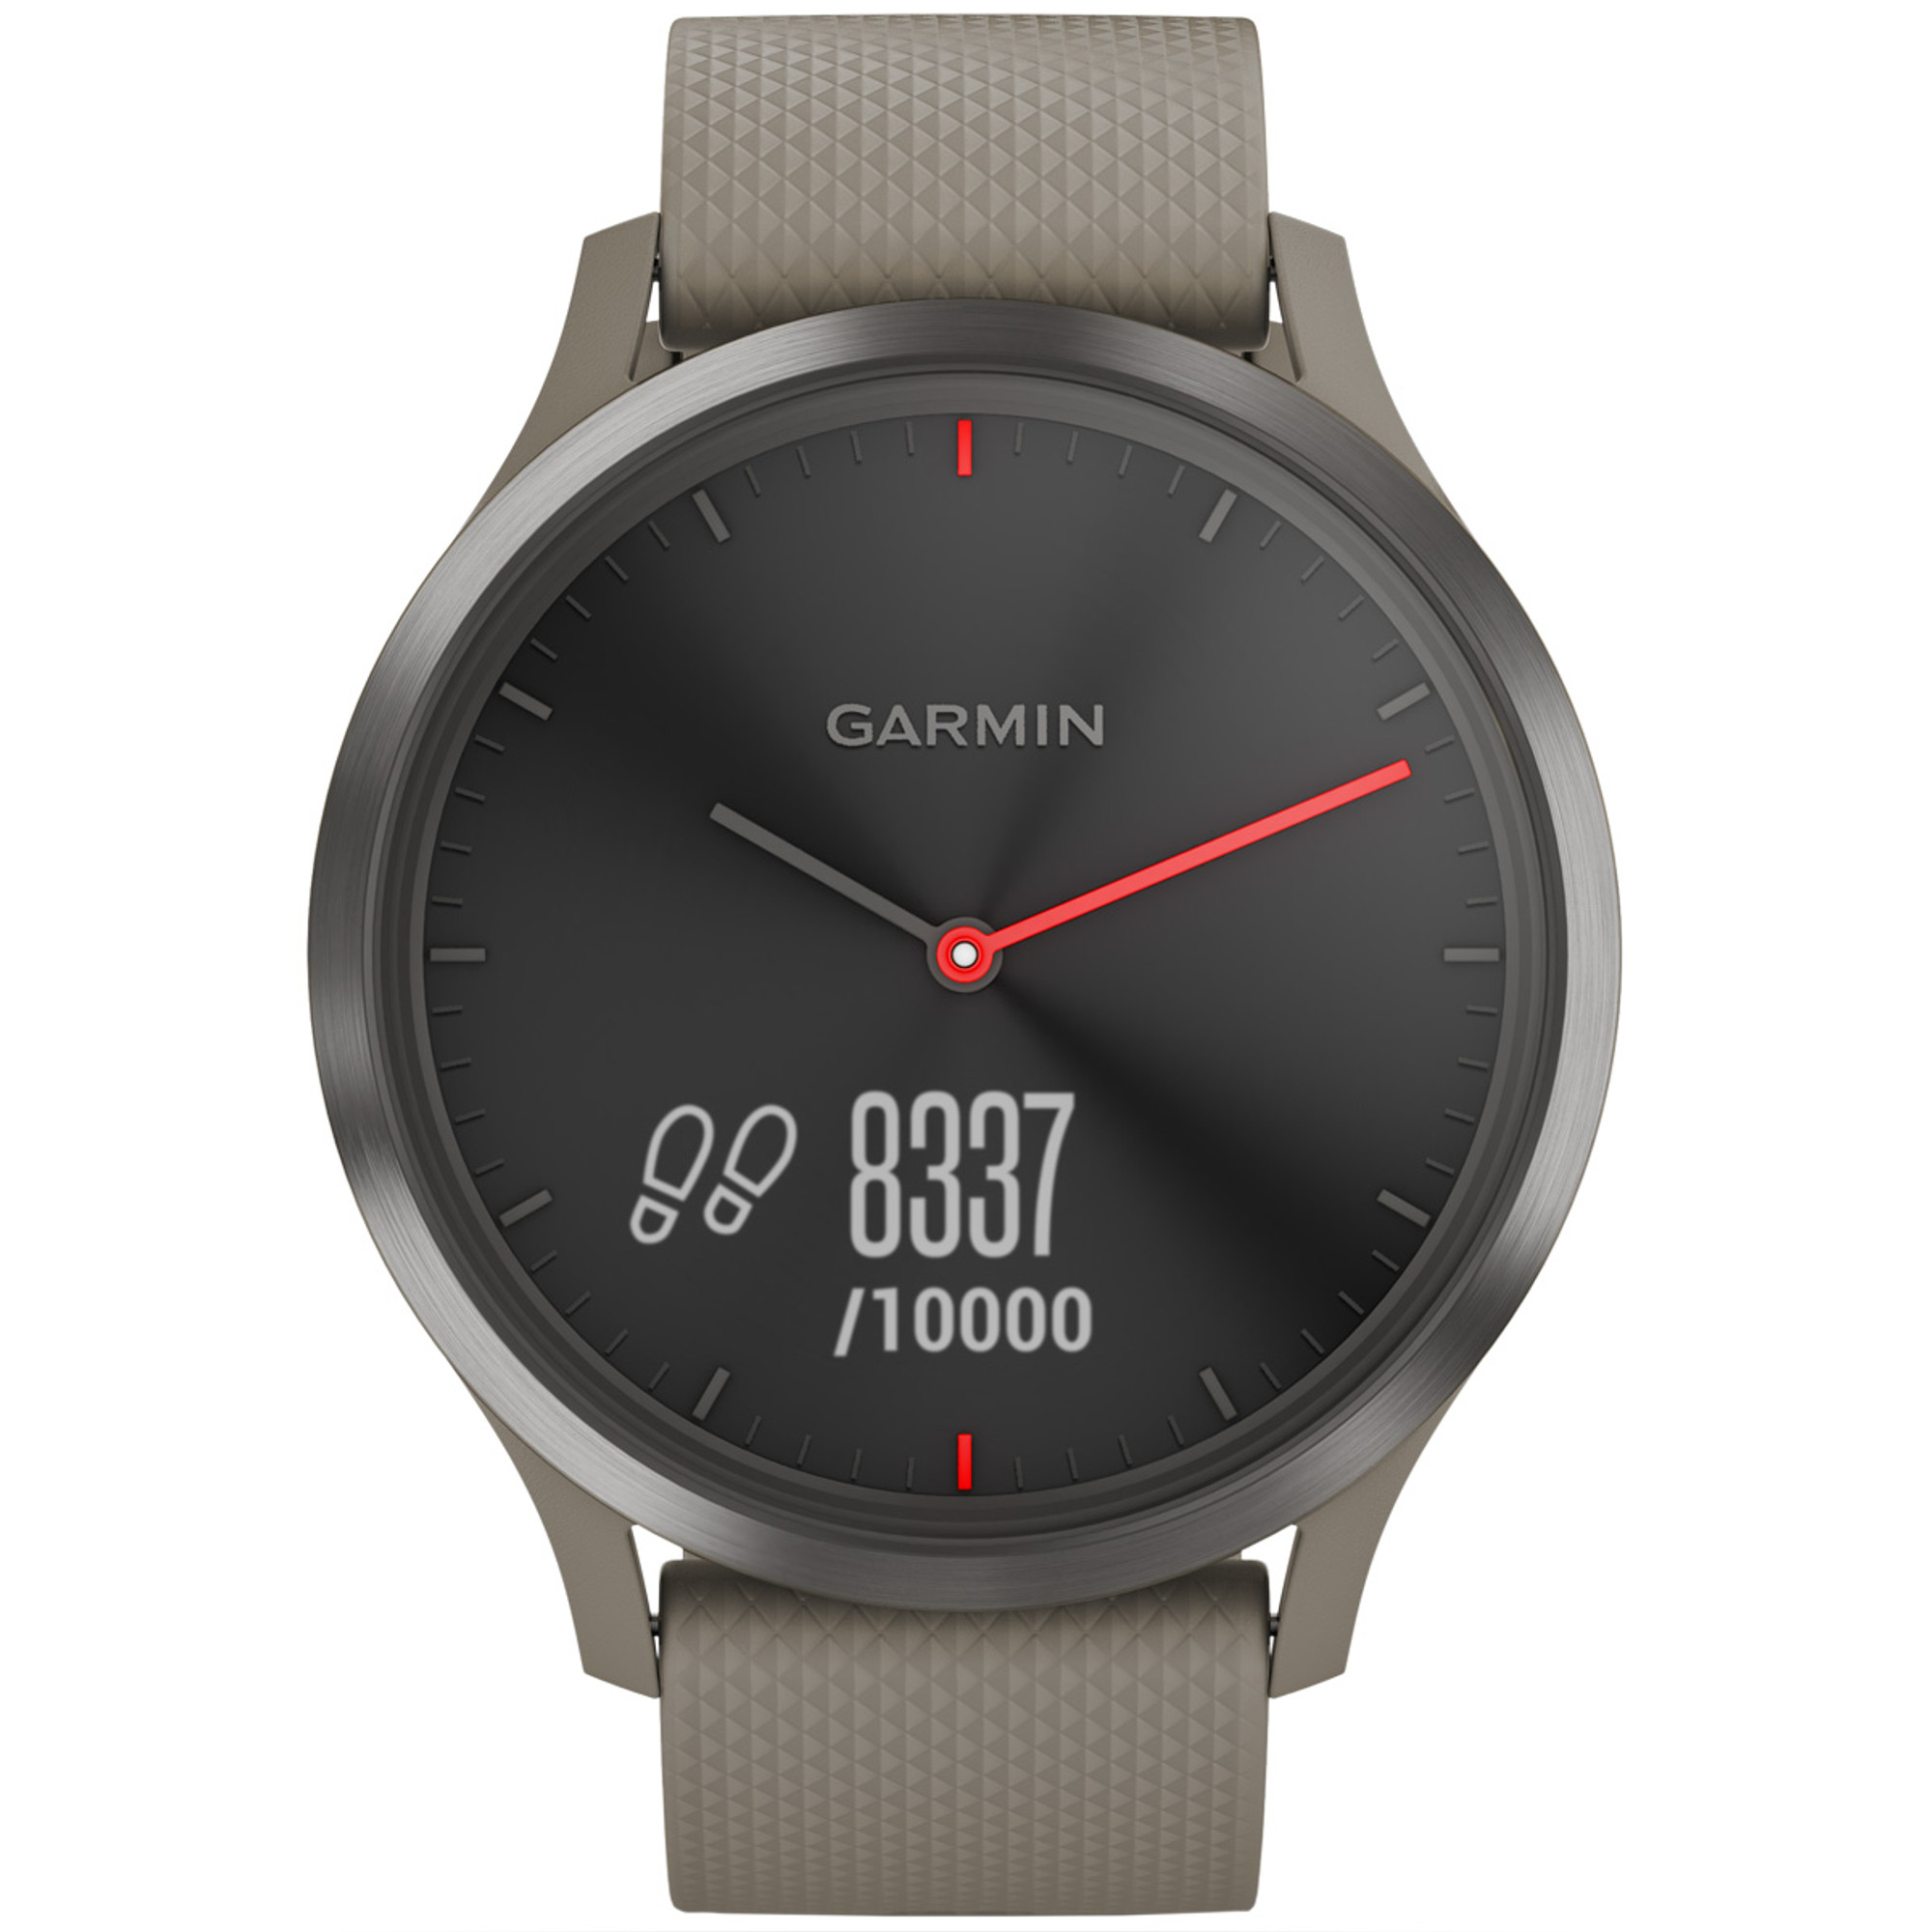 GARMIN vívomove HR Hybrid Smartwatch 010-01850-03